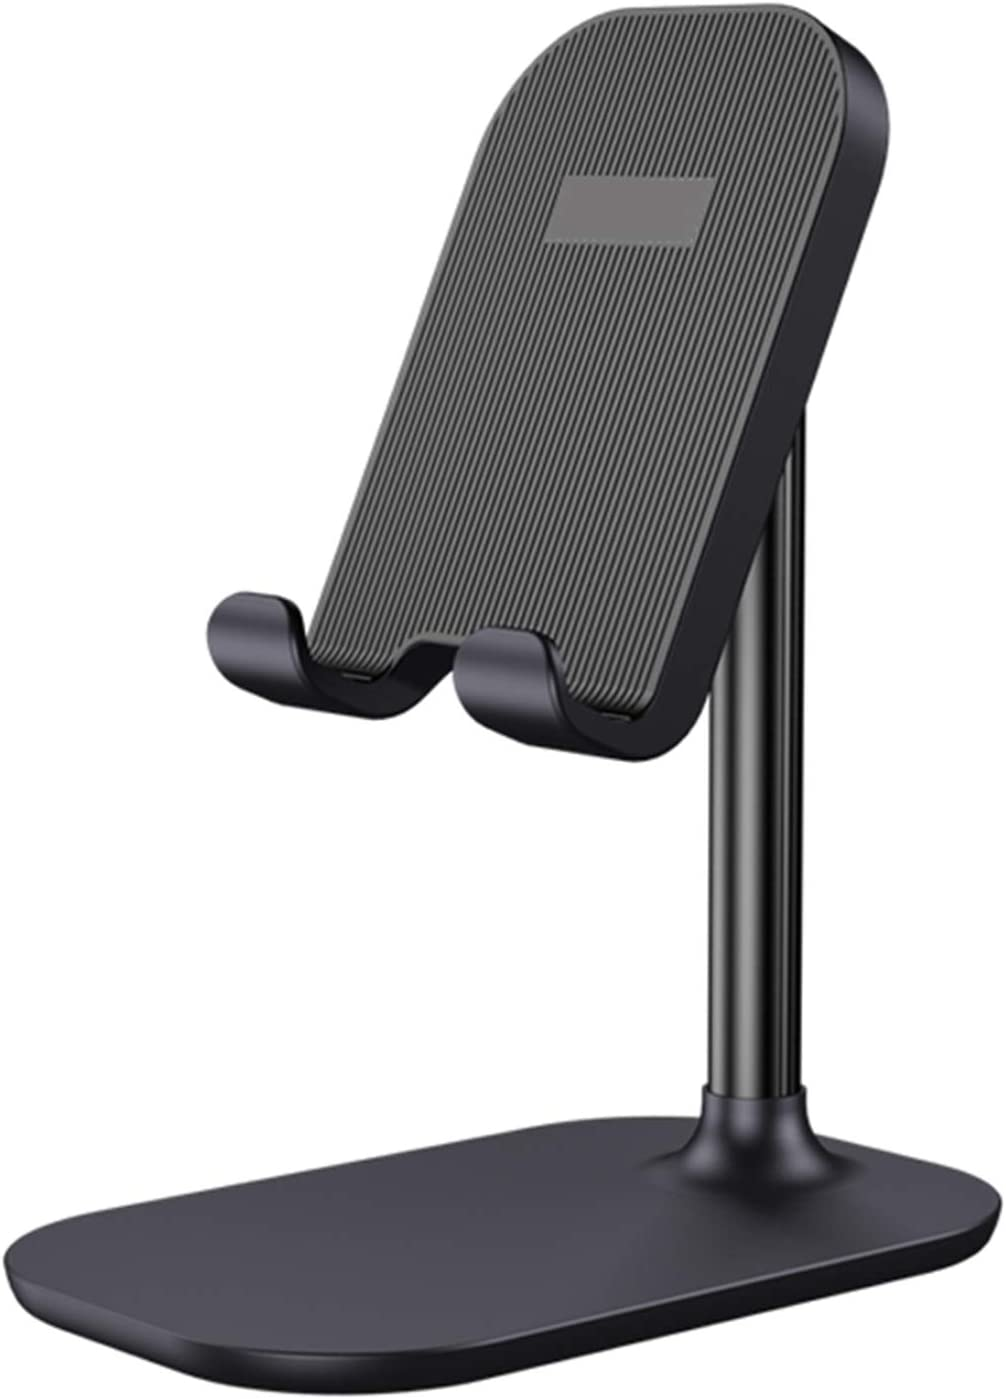 xieming Cell Phone Stand 5-45 Degree Tilt Adjustable Portable Desktop Cell Phone Holder Stand Compatible with iPhone Galaxy Smartphone Tablet Desk Stand